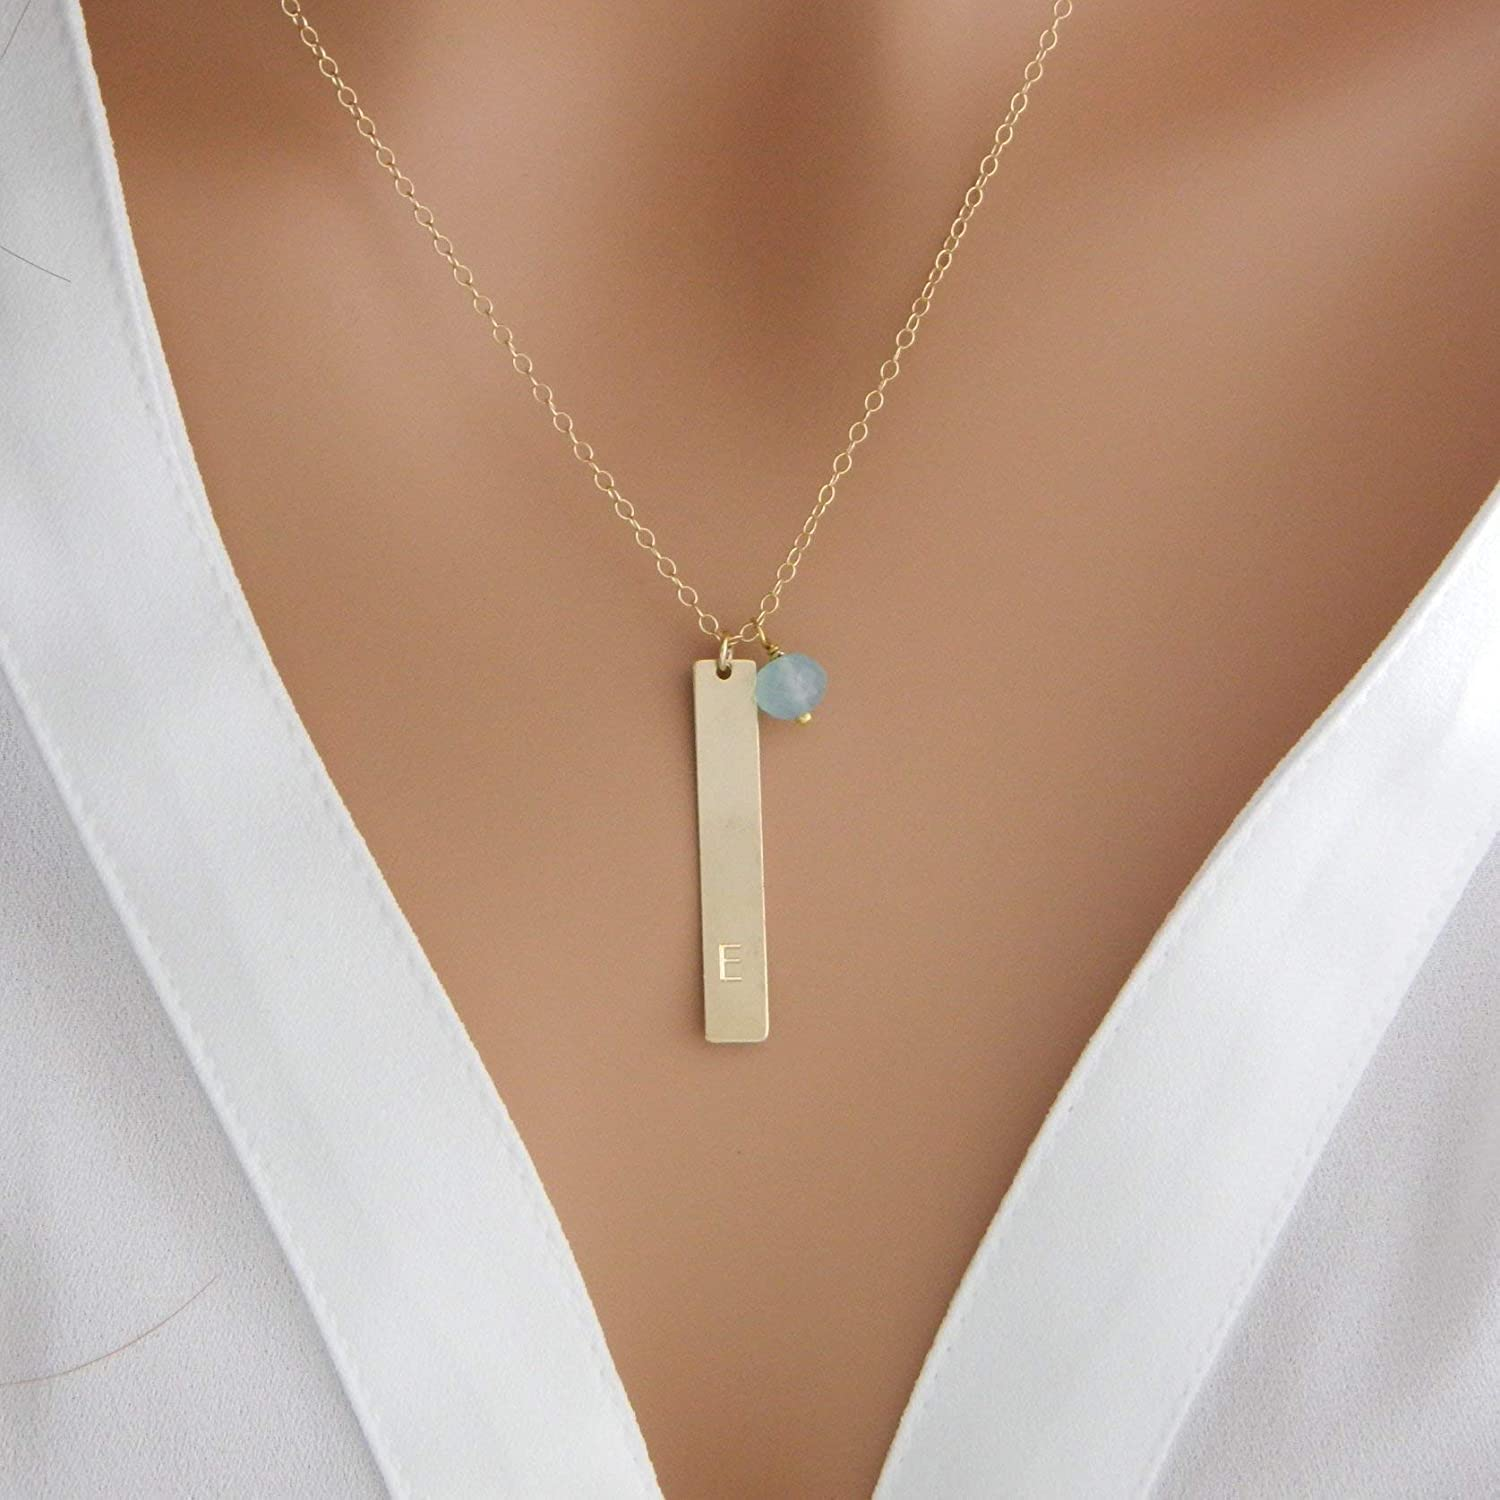 Sterling Silver Initial Necklace Vertical Bar Necklace Minimal Personalized Jewelry Gifts for Women Best Friend Tiny Birthstone Necklace